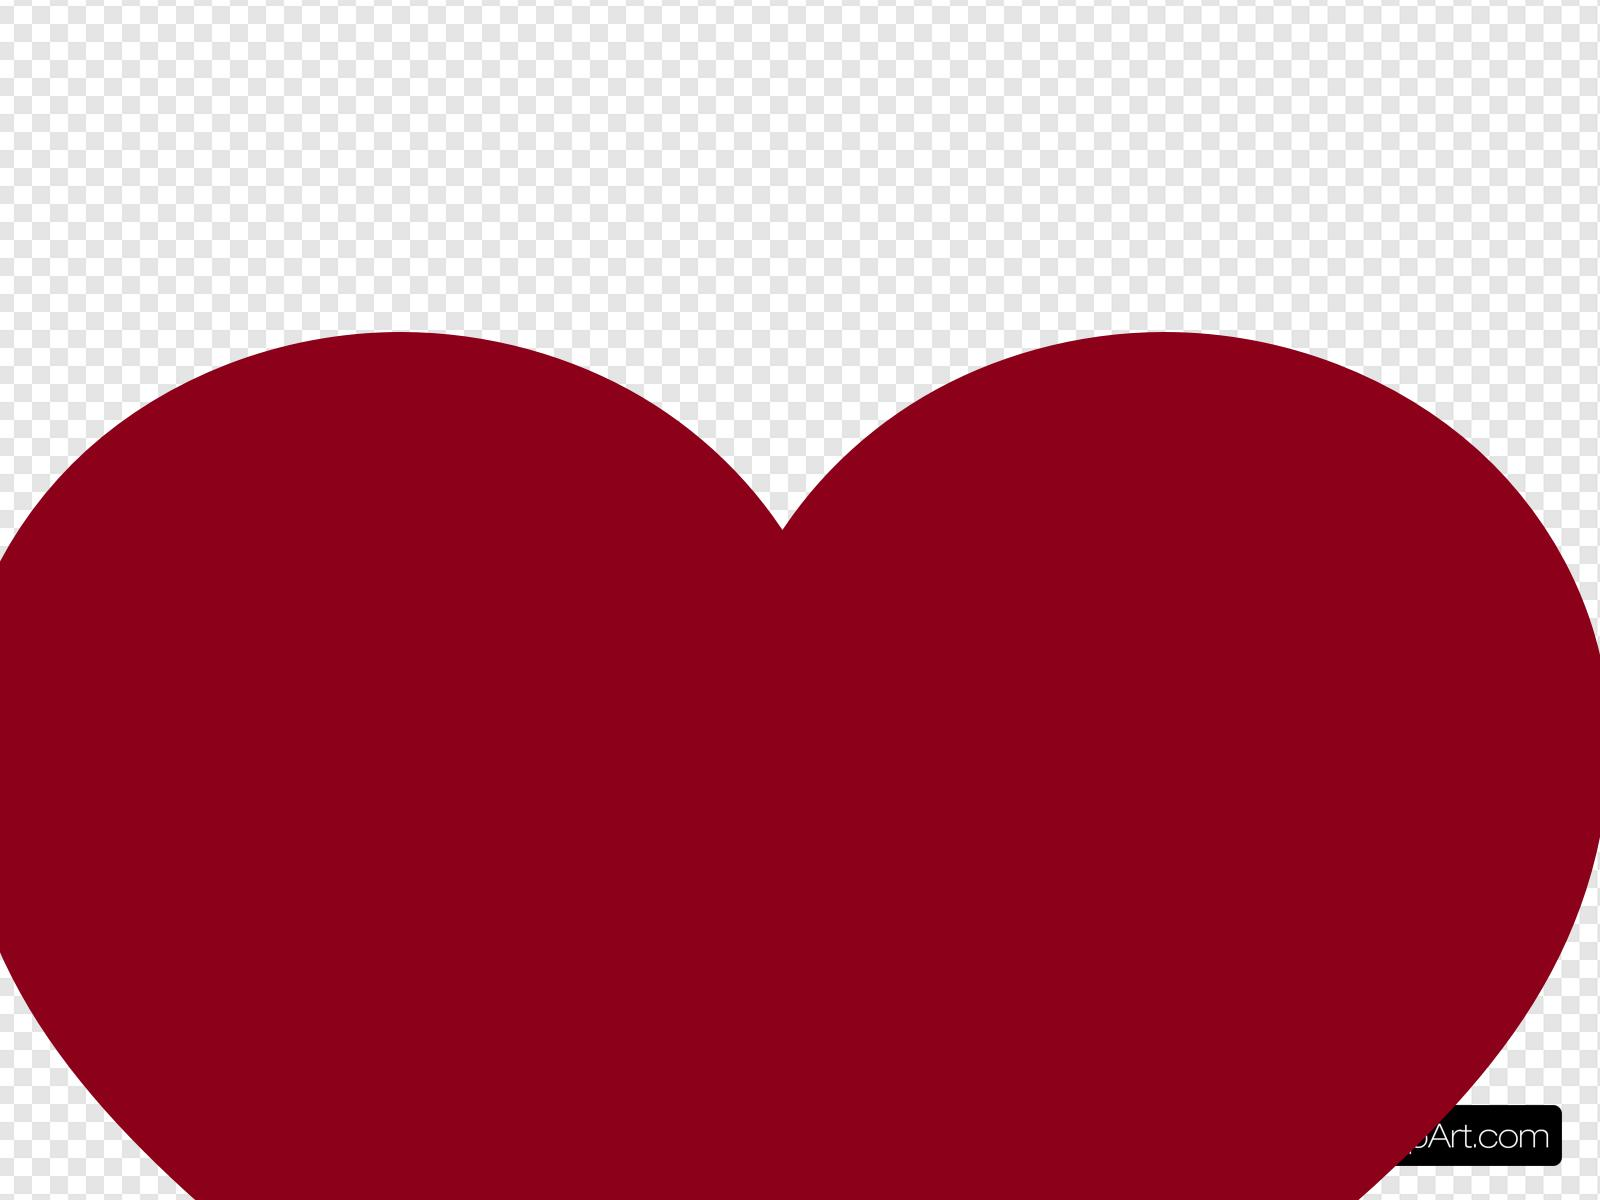 Burgundy Heart Clip art, Icon and SVG.